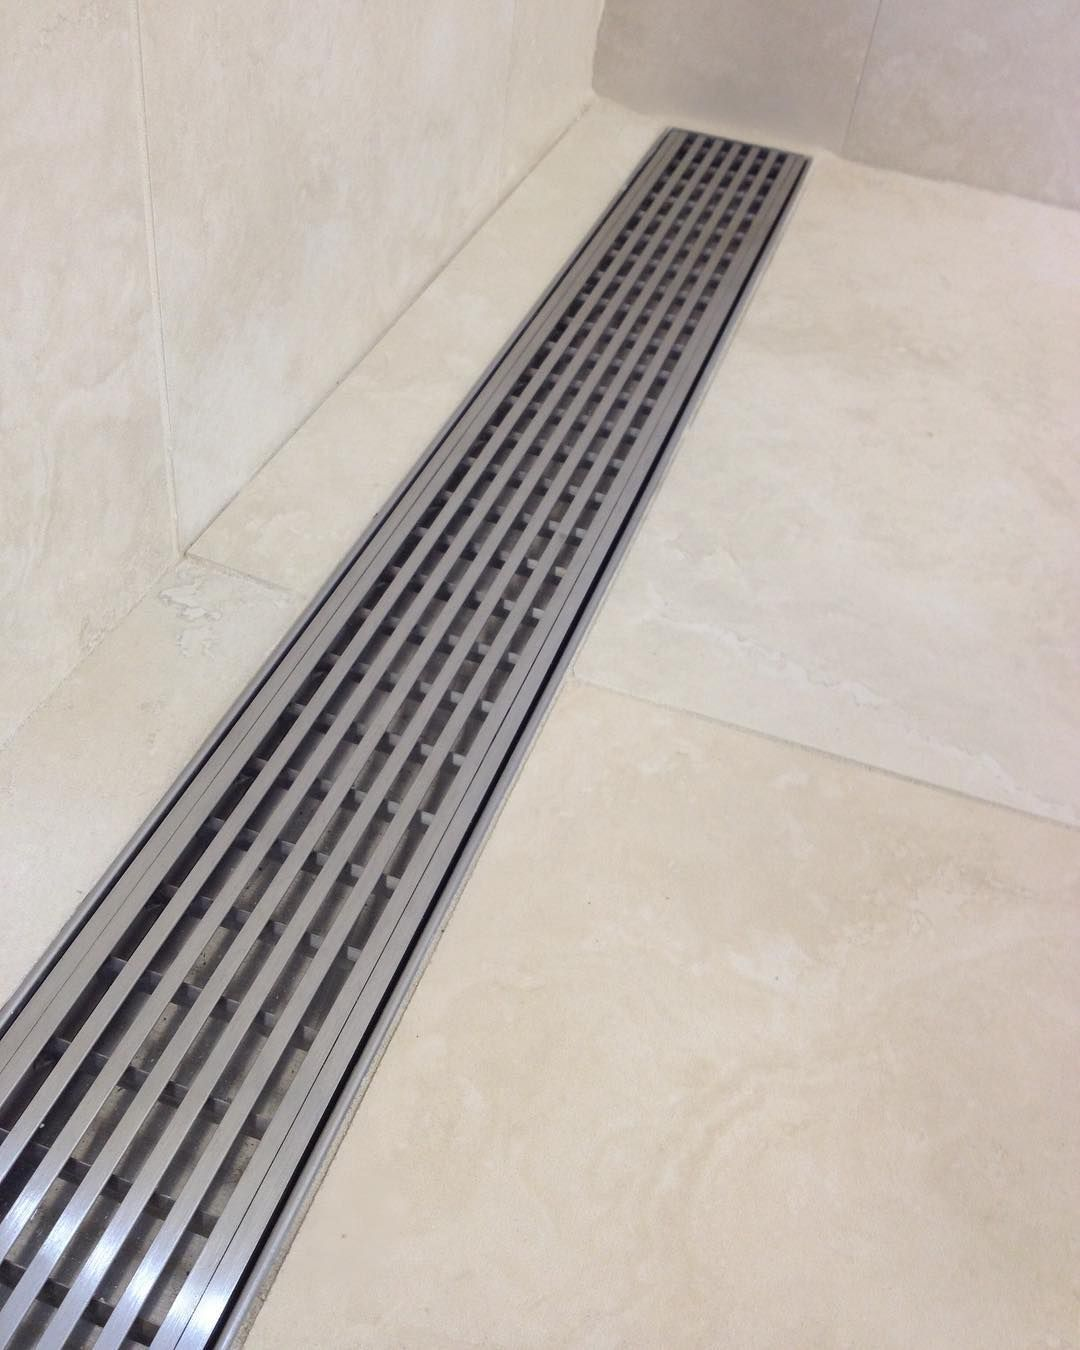 Luxe Linear Drains On Instagram Unmatched In Design Strength